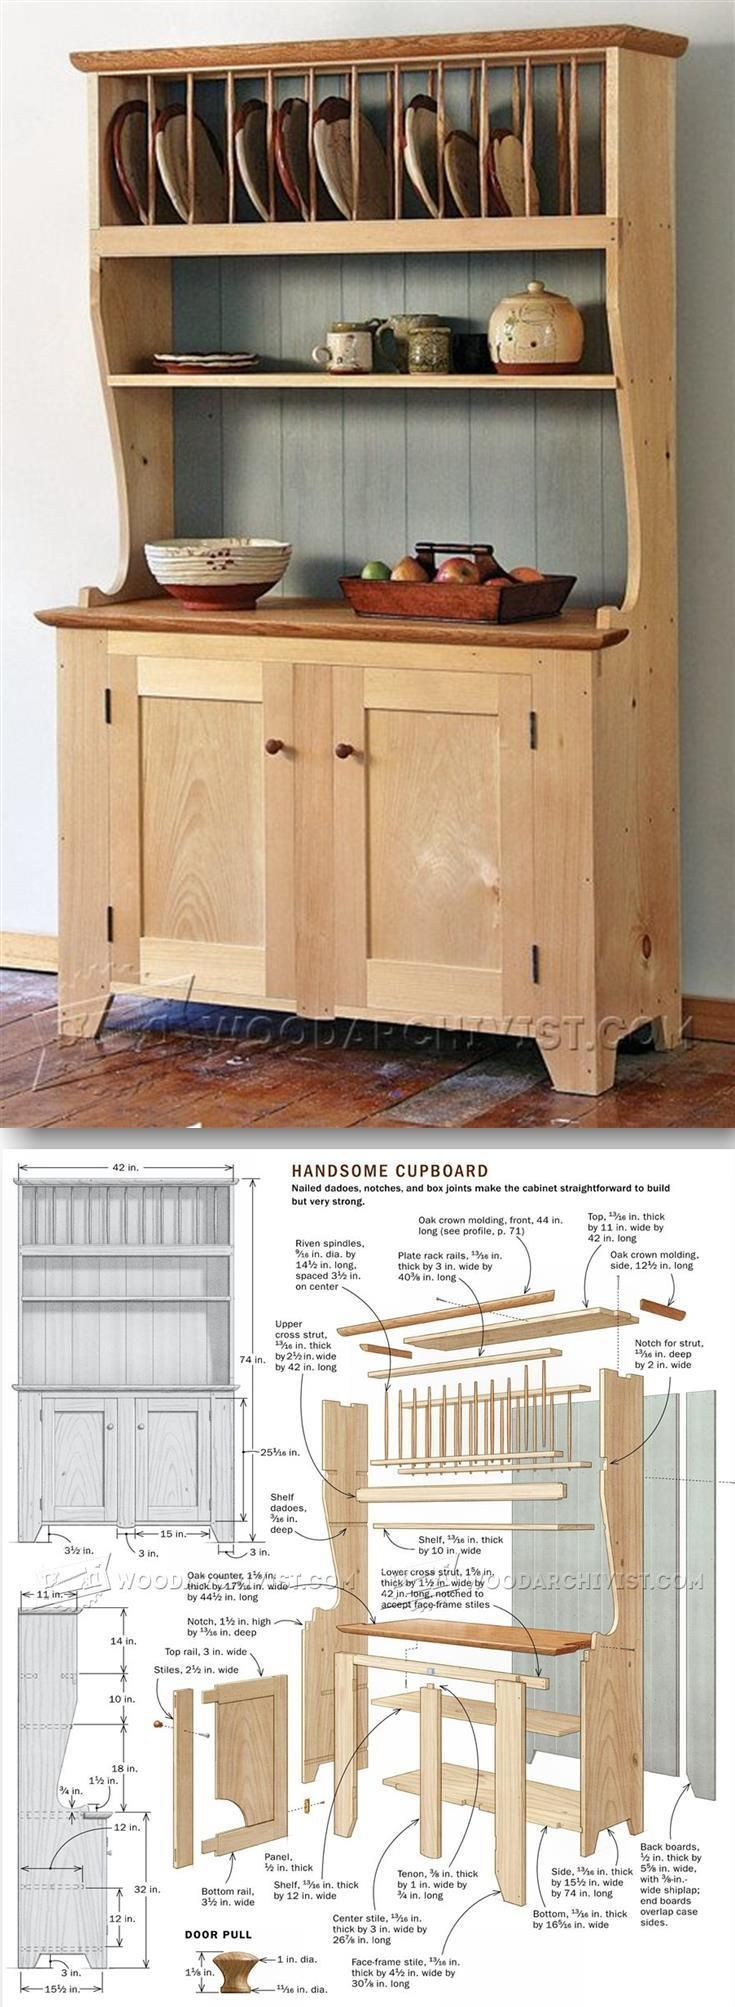 25 best ideas about record player stand on pinterest record player record storage and vinyl. Black Bedroom Furniture Sets. Home Design Ideas